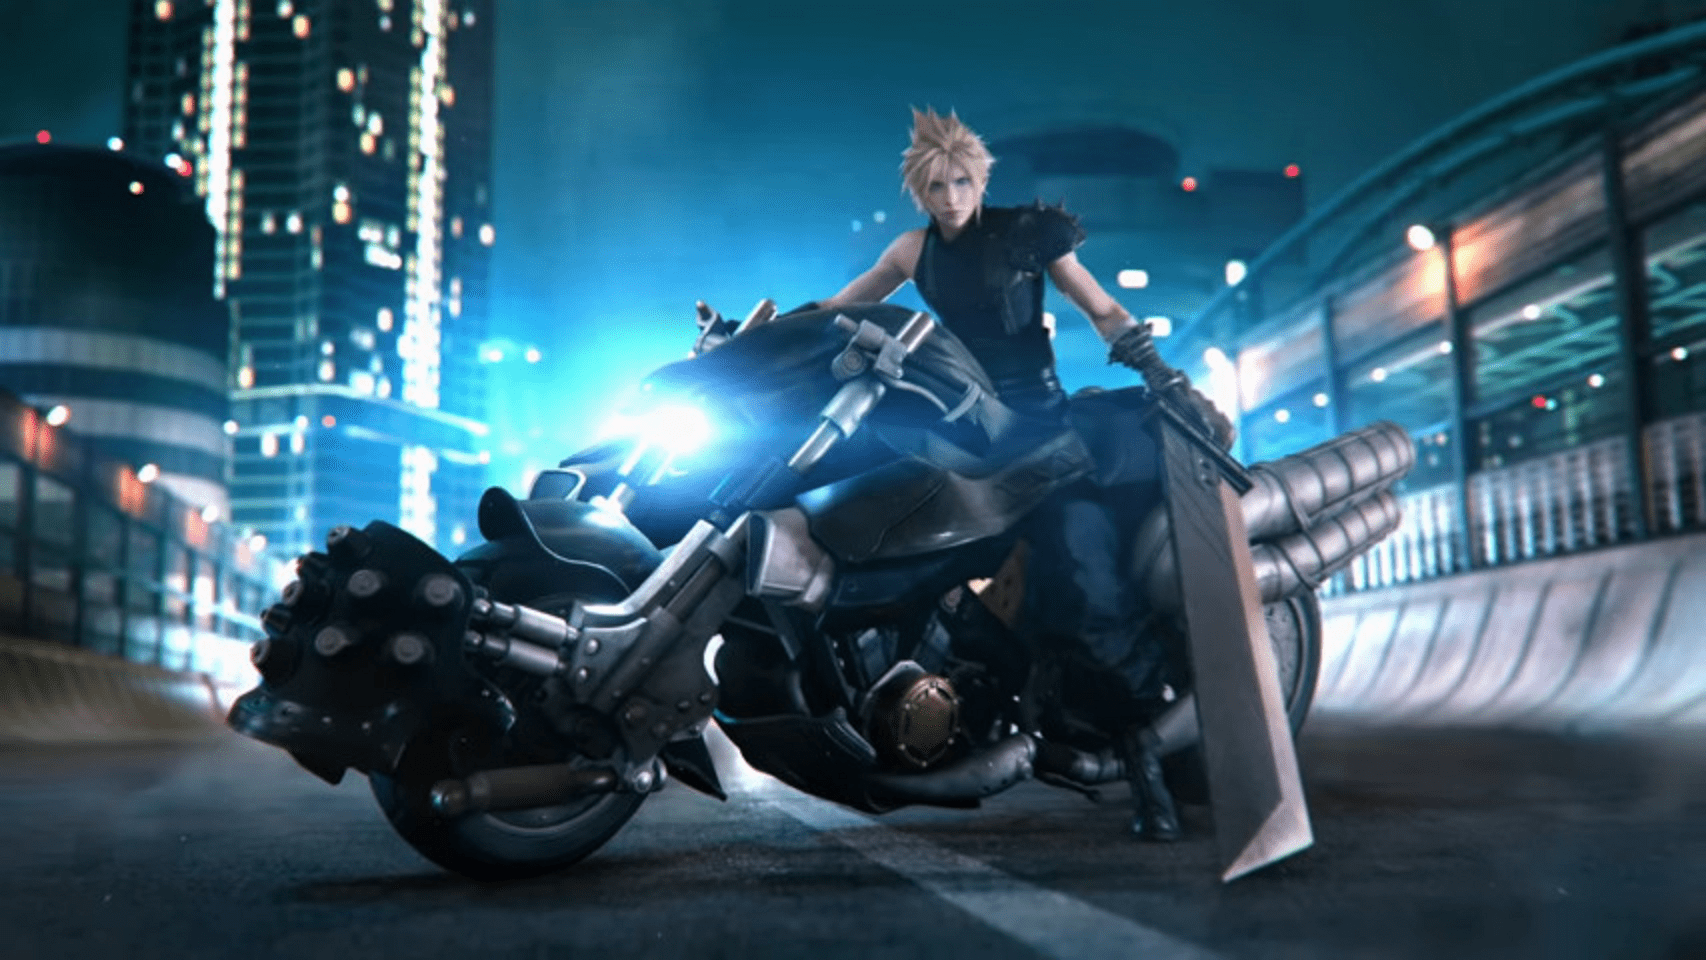 Square Enix's Final Fantasy VII Remake Long TV Commercial Is One Romantic Story Filled With Anticipation And Memories